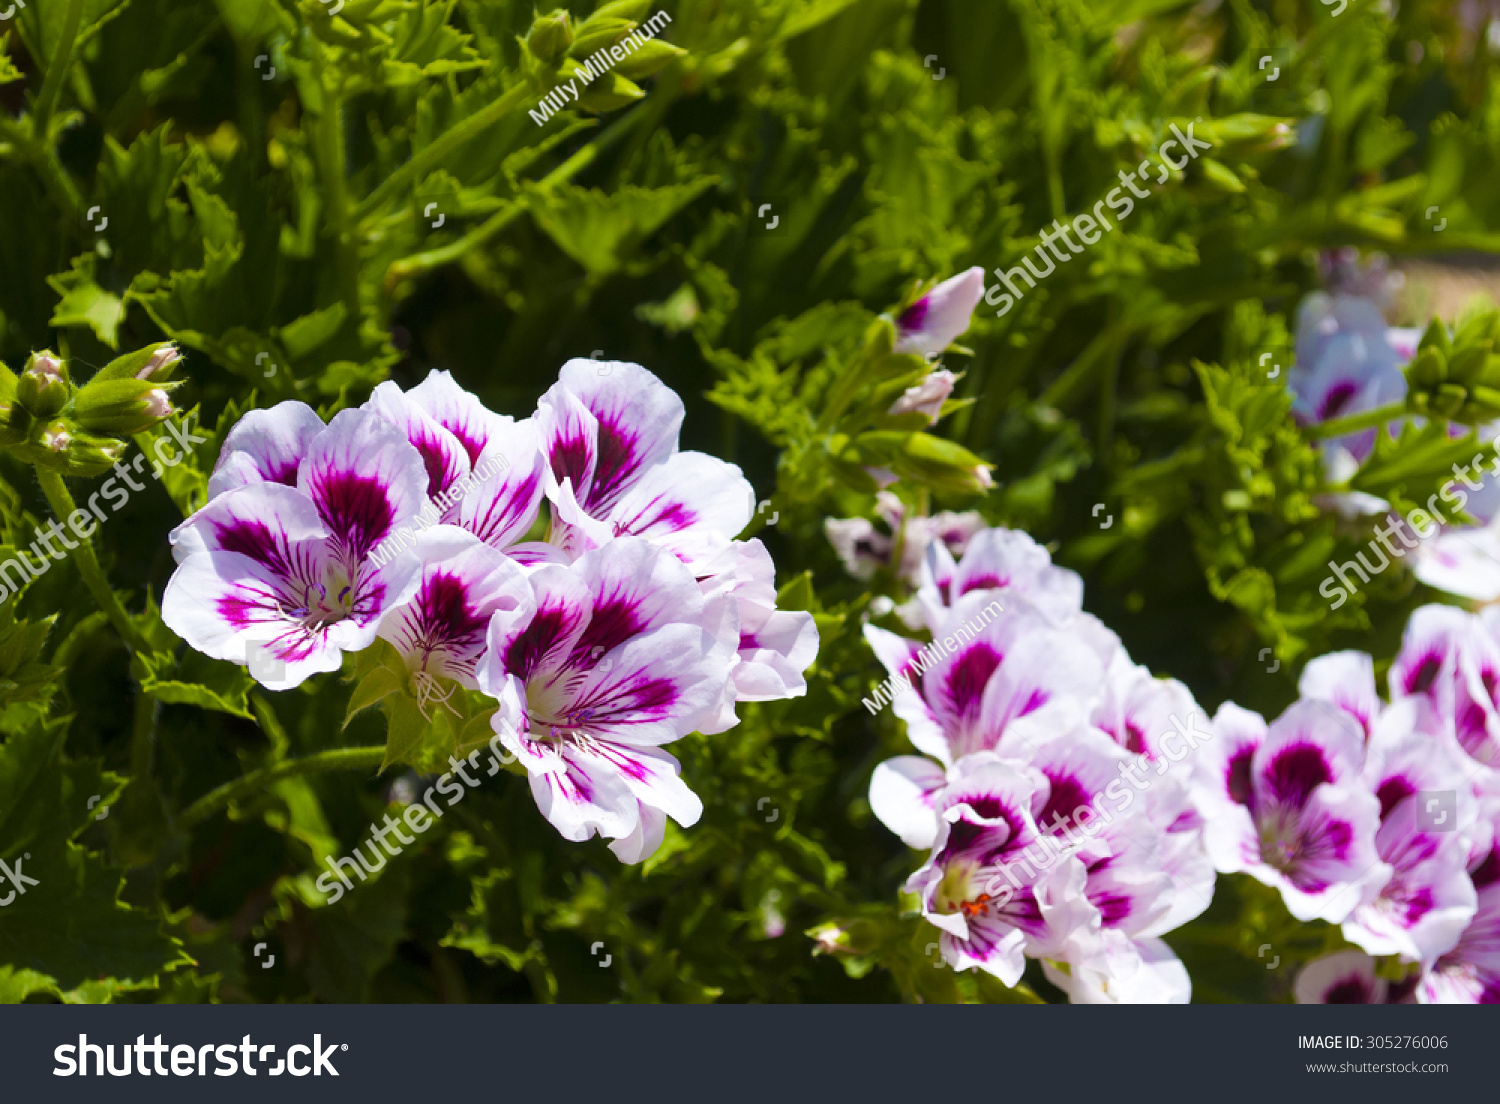 White Pink Flower Bush Stock Photo 100 Legal Protection 305276006